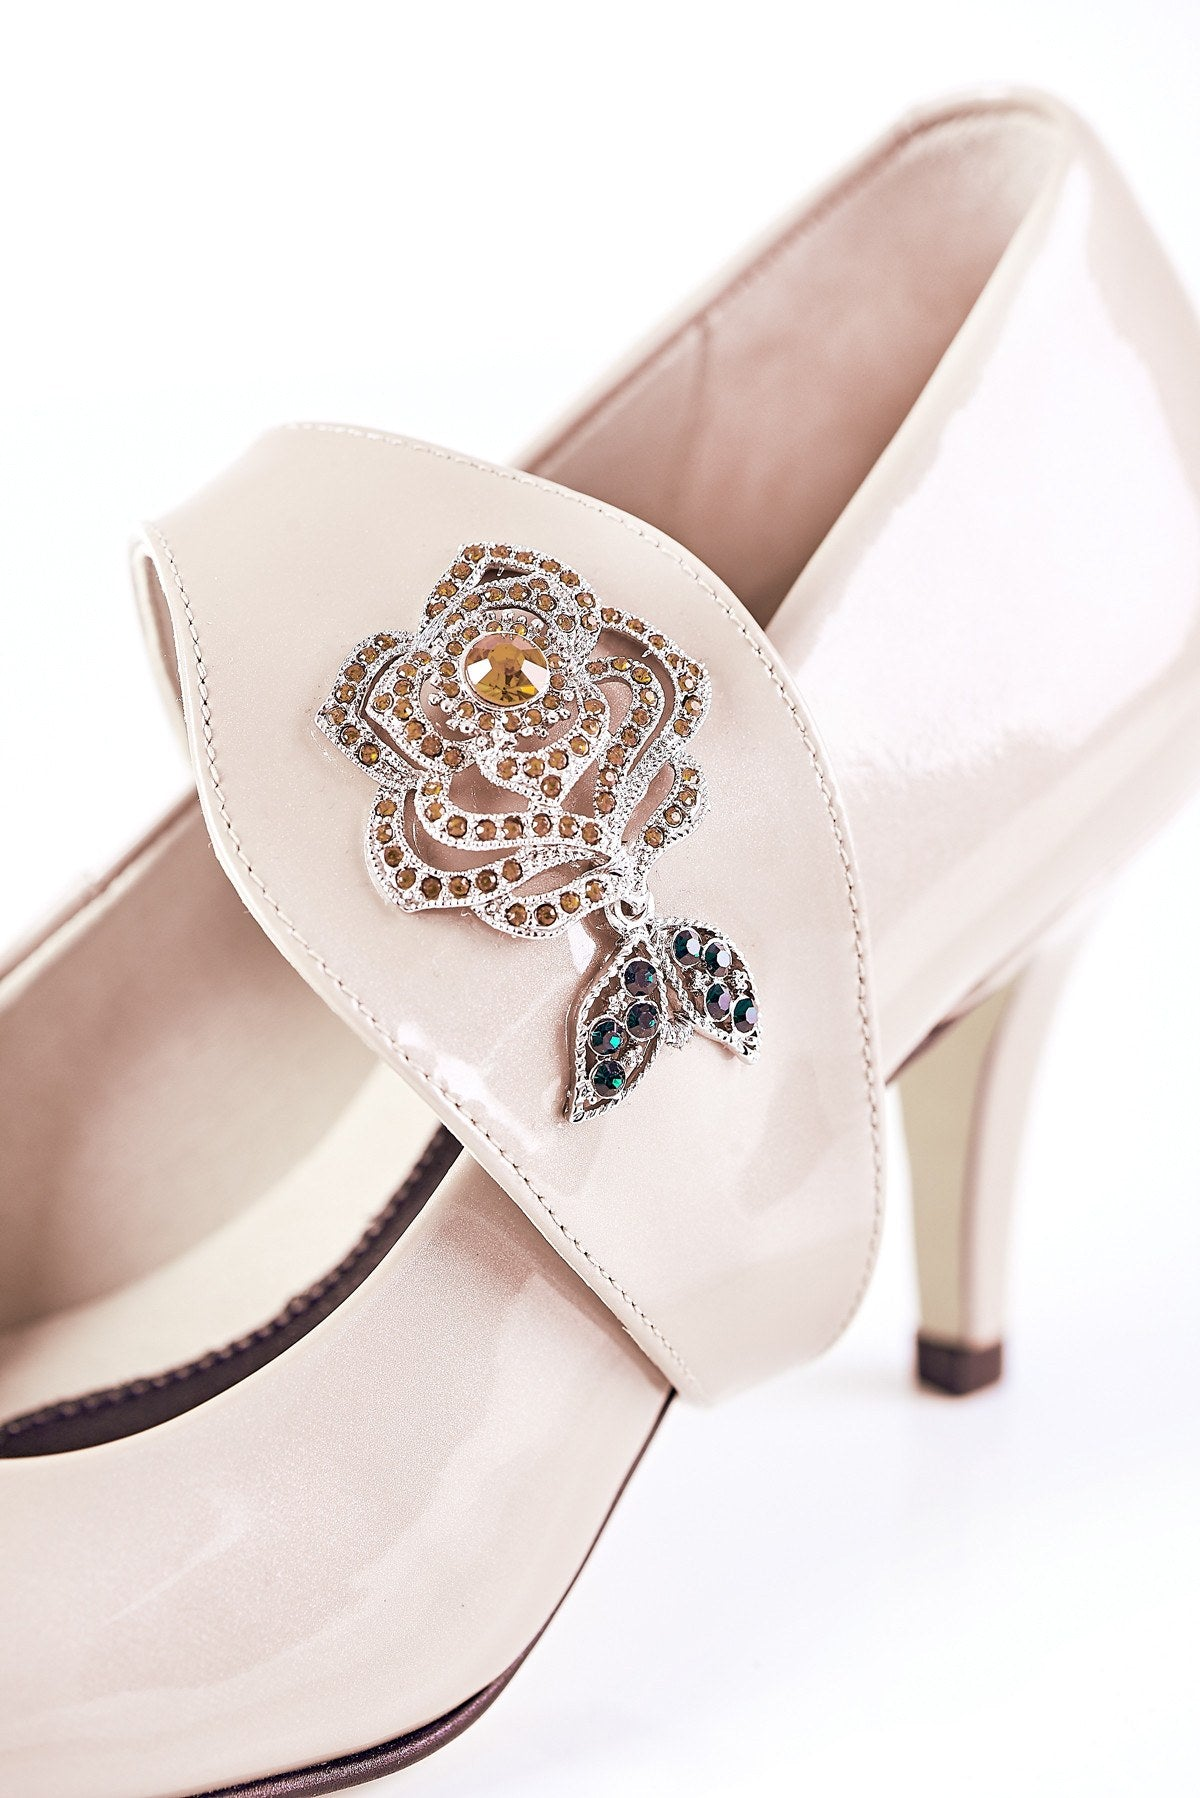 Time To Bloom - Shoes by Shaherazad